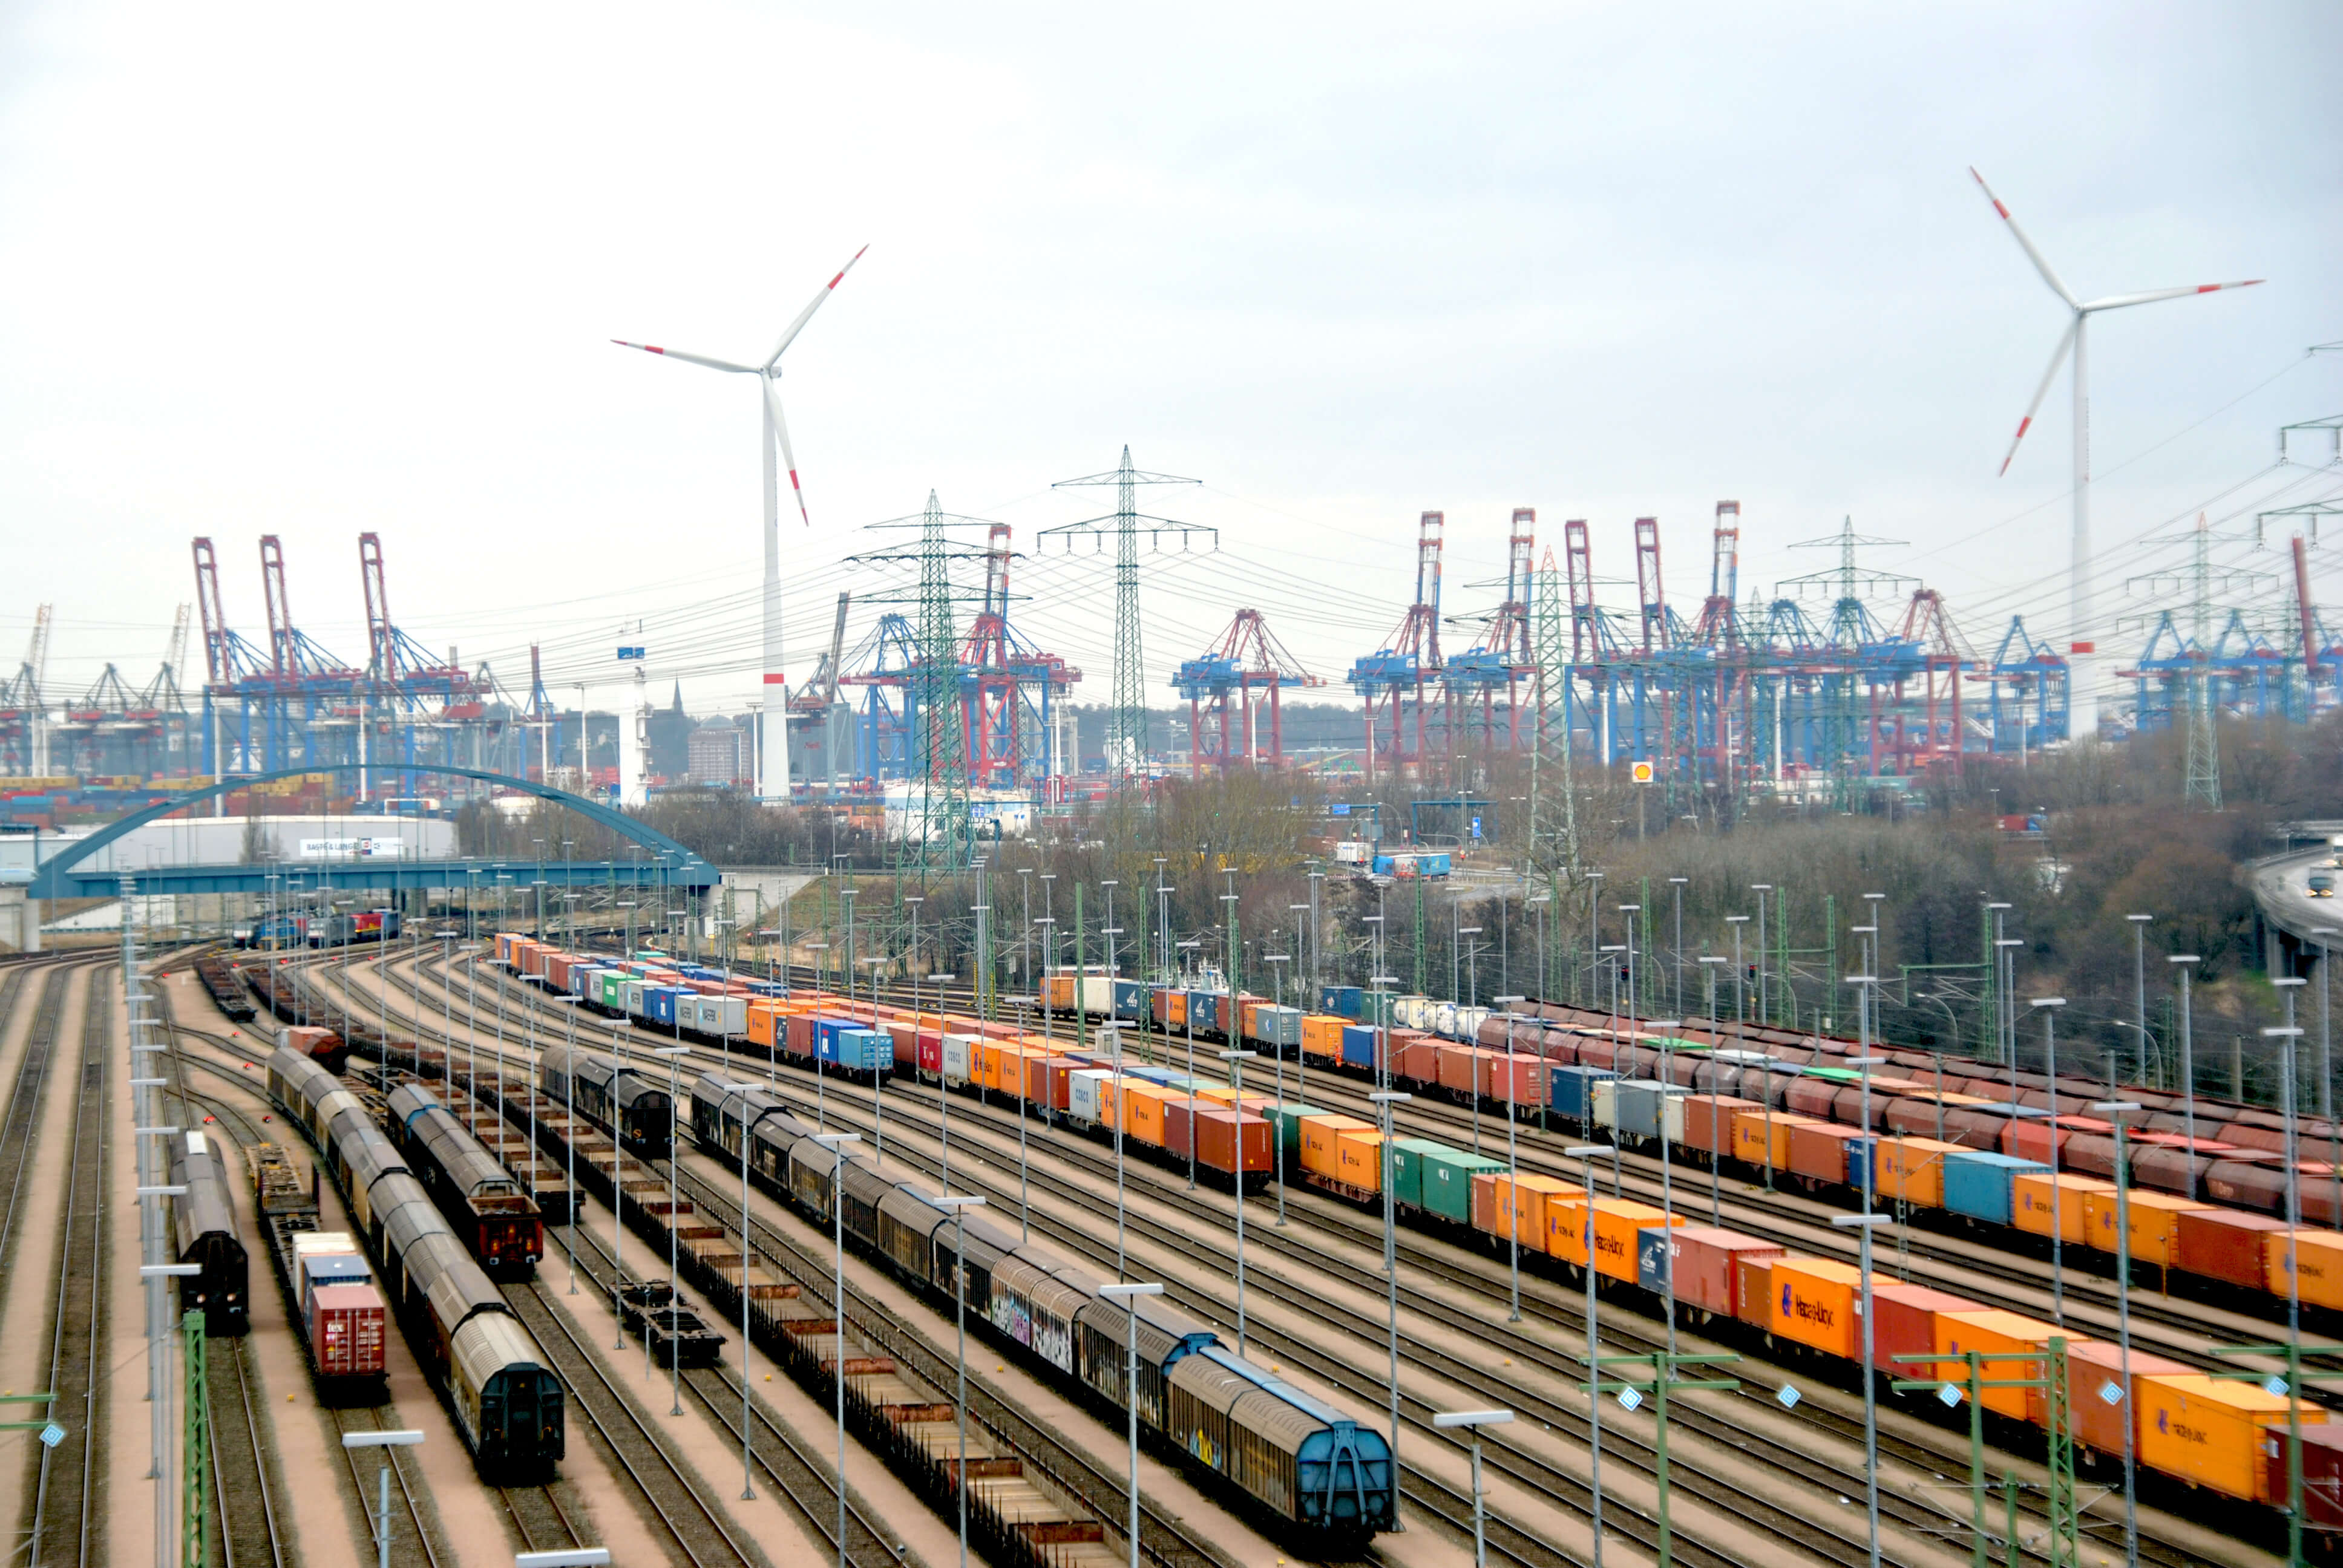 Copyright Hafen Hamburg Marketing e.V.